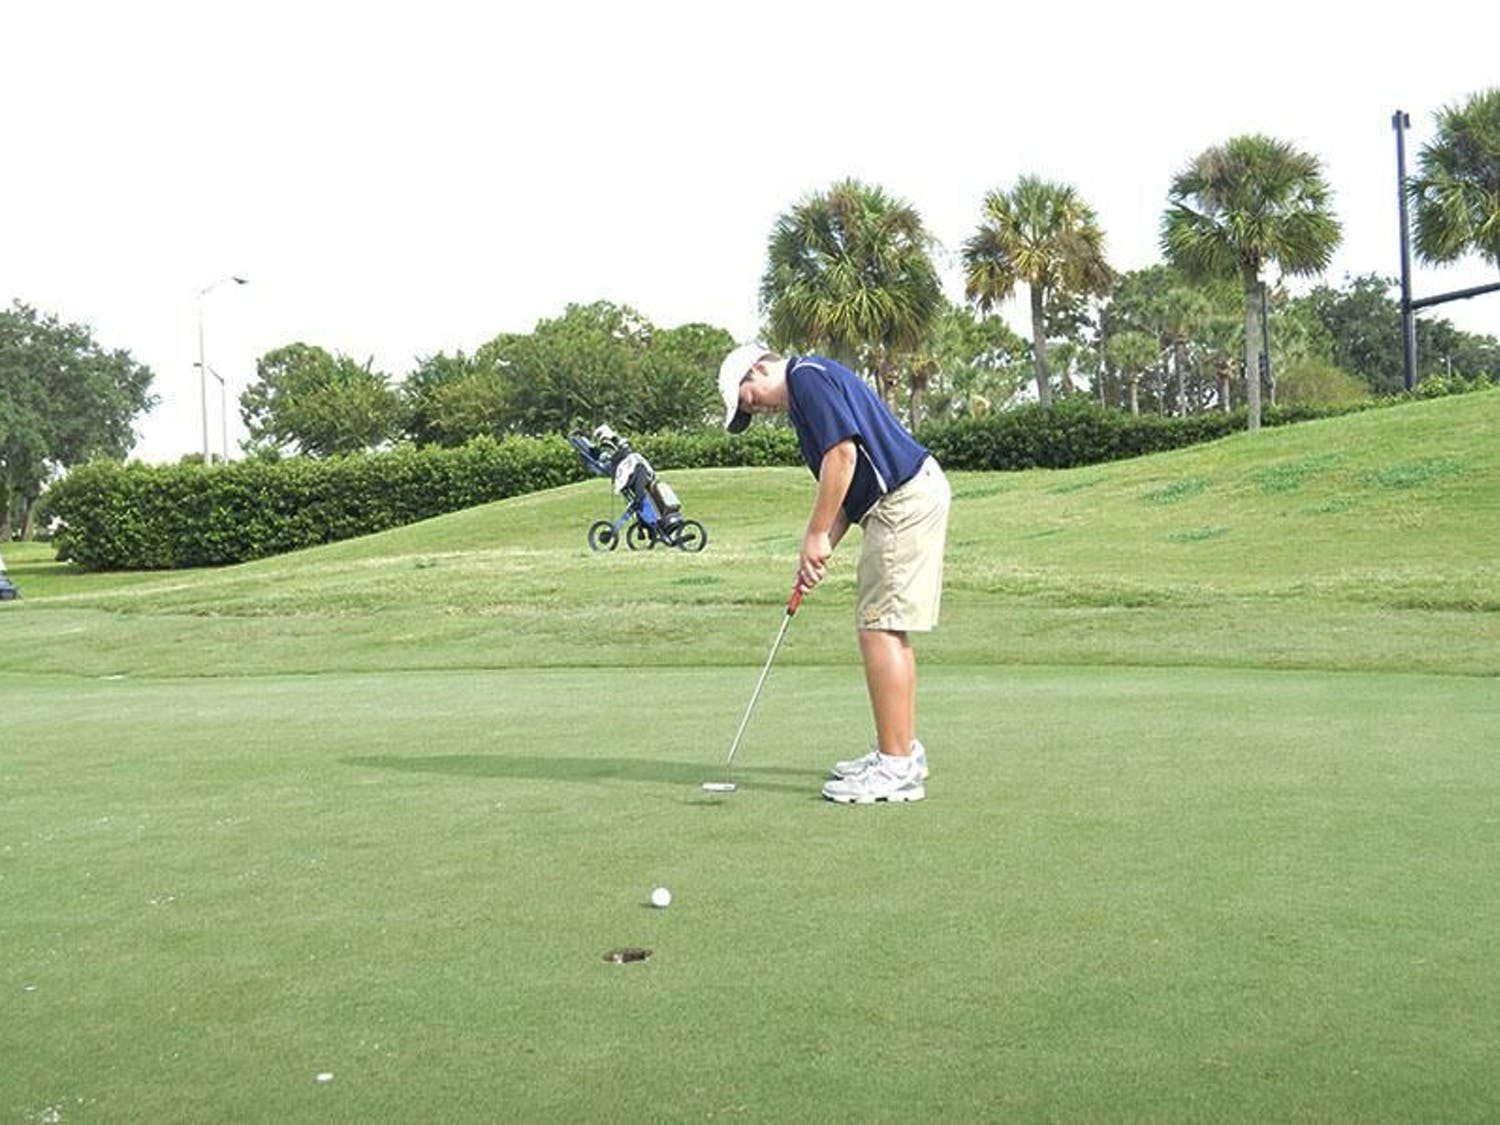 Joe Pagdin drains a putt for Trinity Prep in 2015, where he was the No. 1 player on the varsity team in eighth grade.